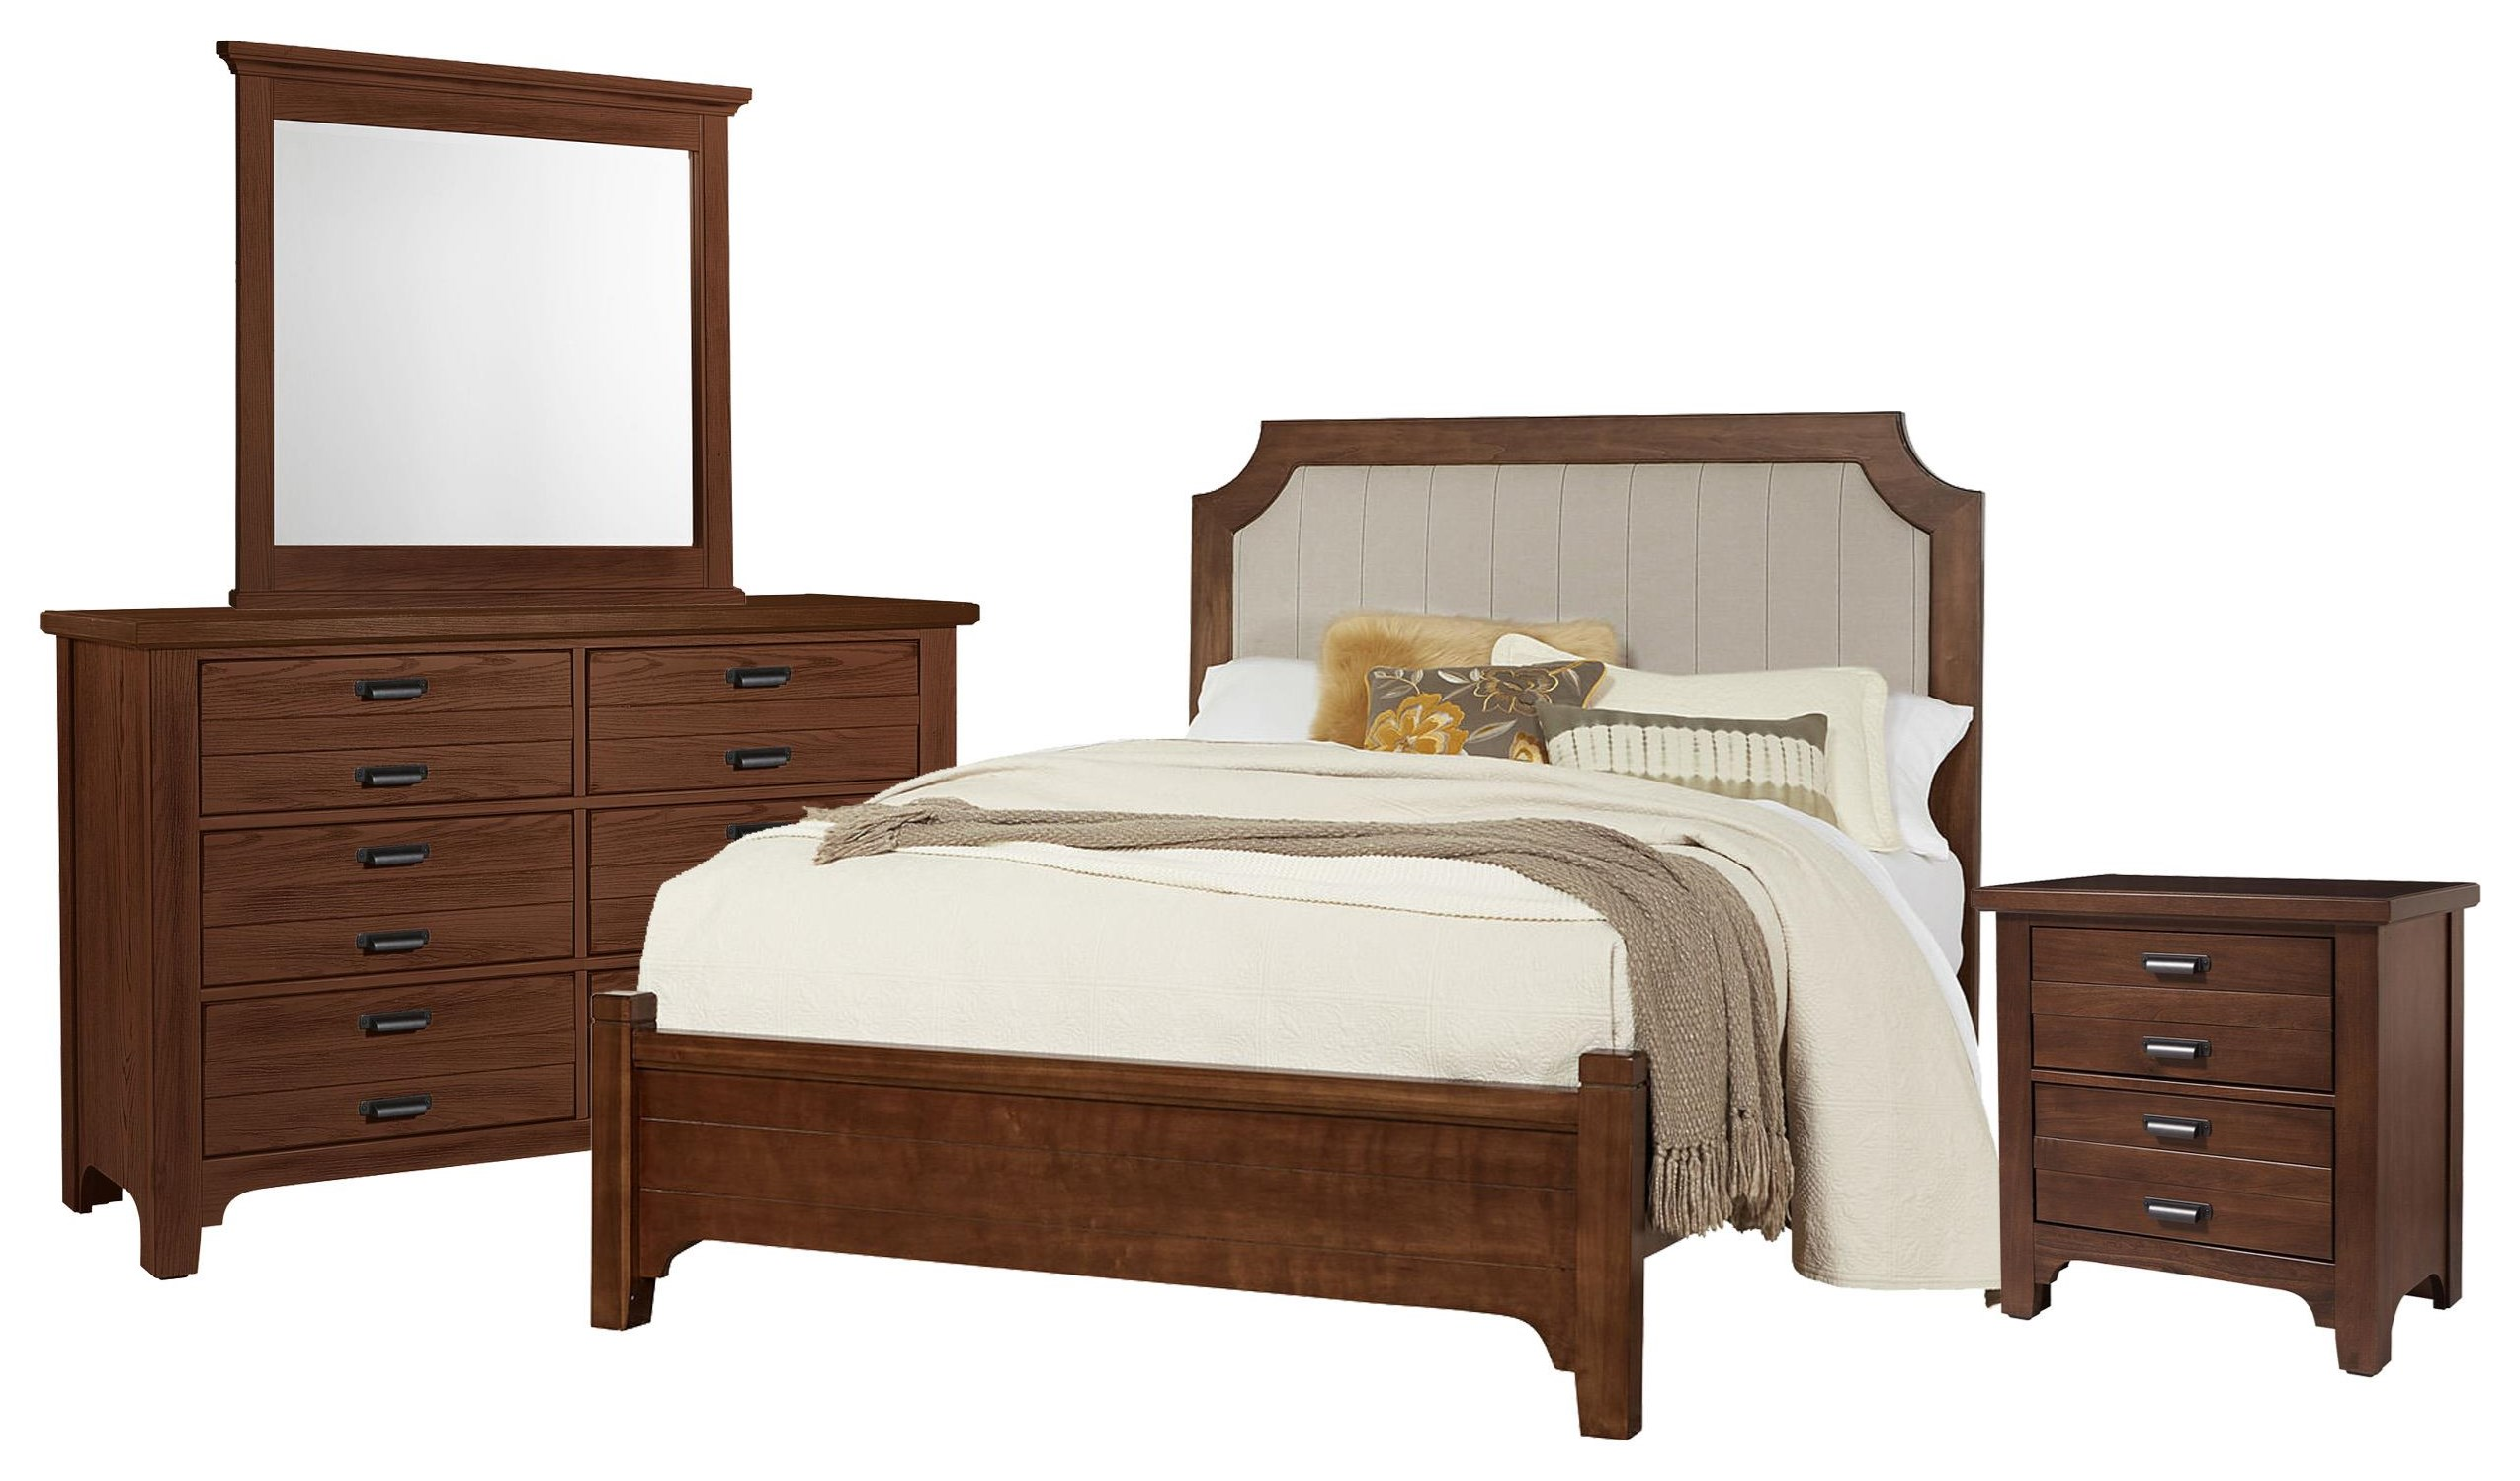 Bungalo Home King Bed, Dresser, Mirror, Night by Vaughan Bassett at Johnny Janosik